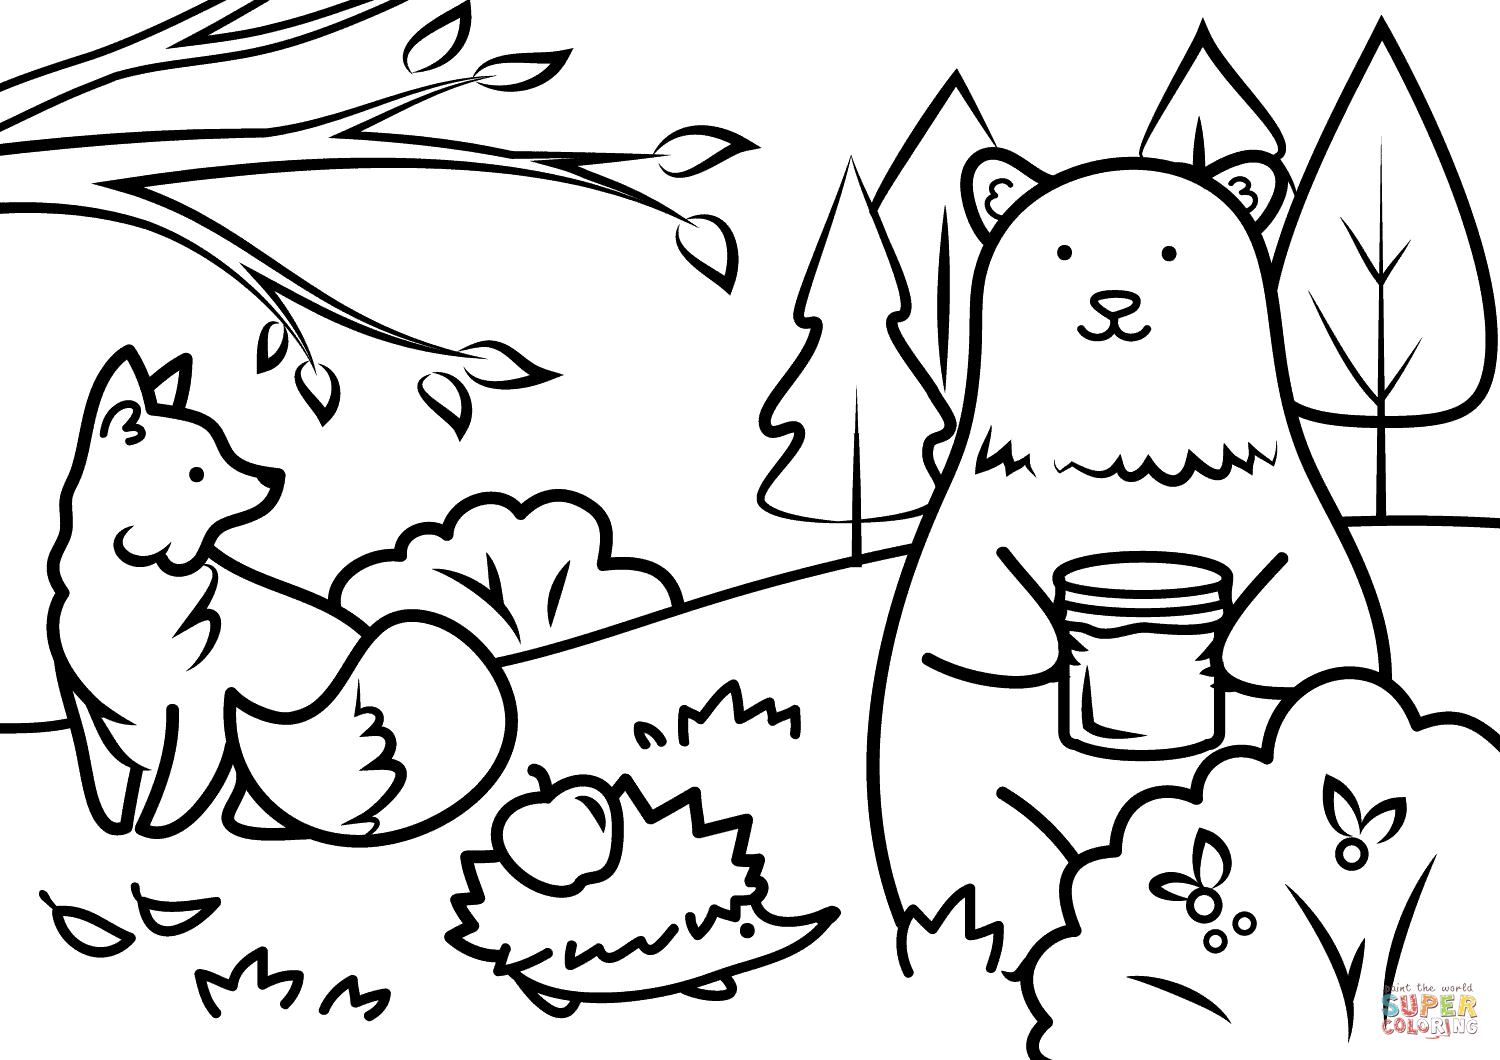 Autumn Animals Coloring Page | Free Printable Coloring Pages - Fall Printable Coloring Pages Free